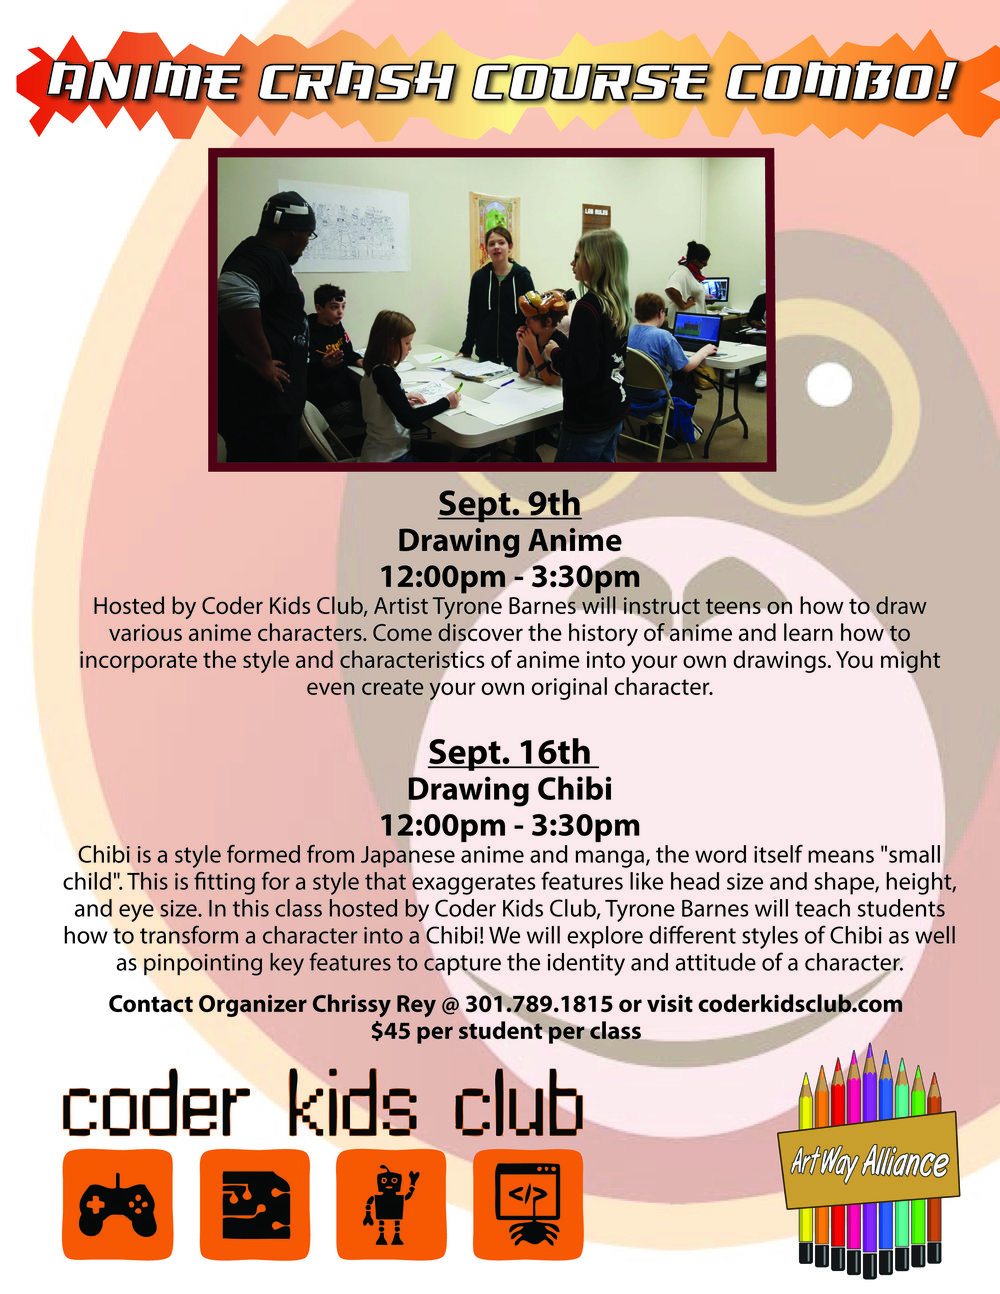 drawing chibi with coder kids club u2014 art way alliance